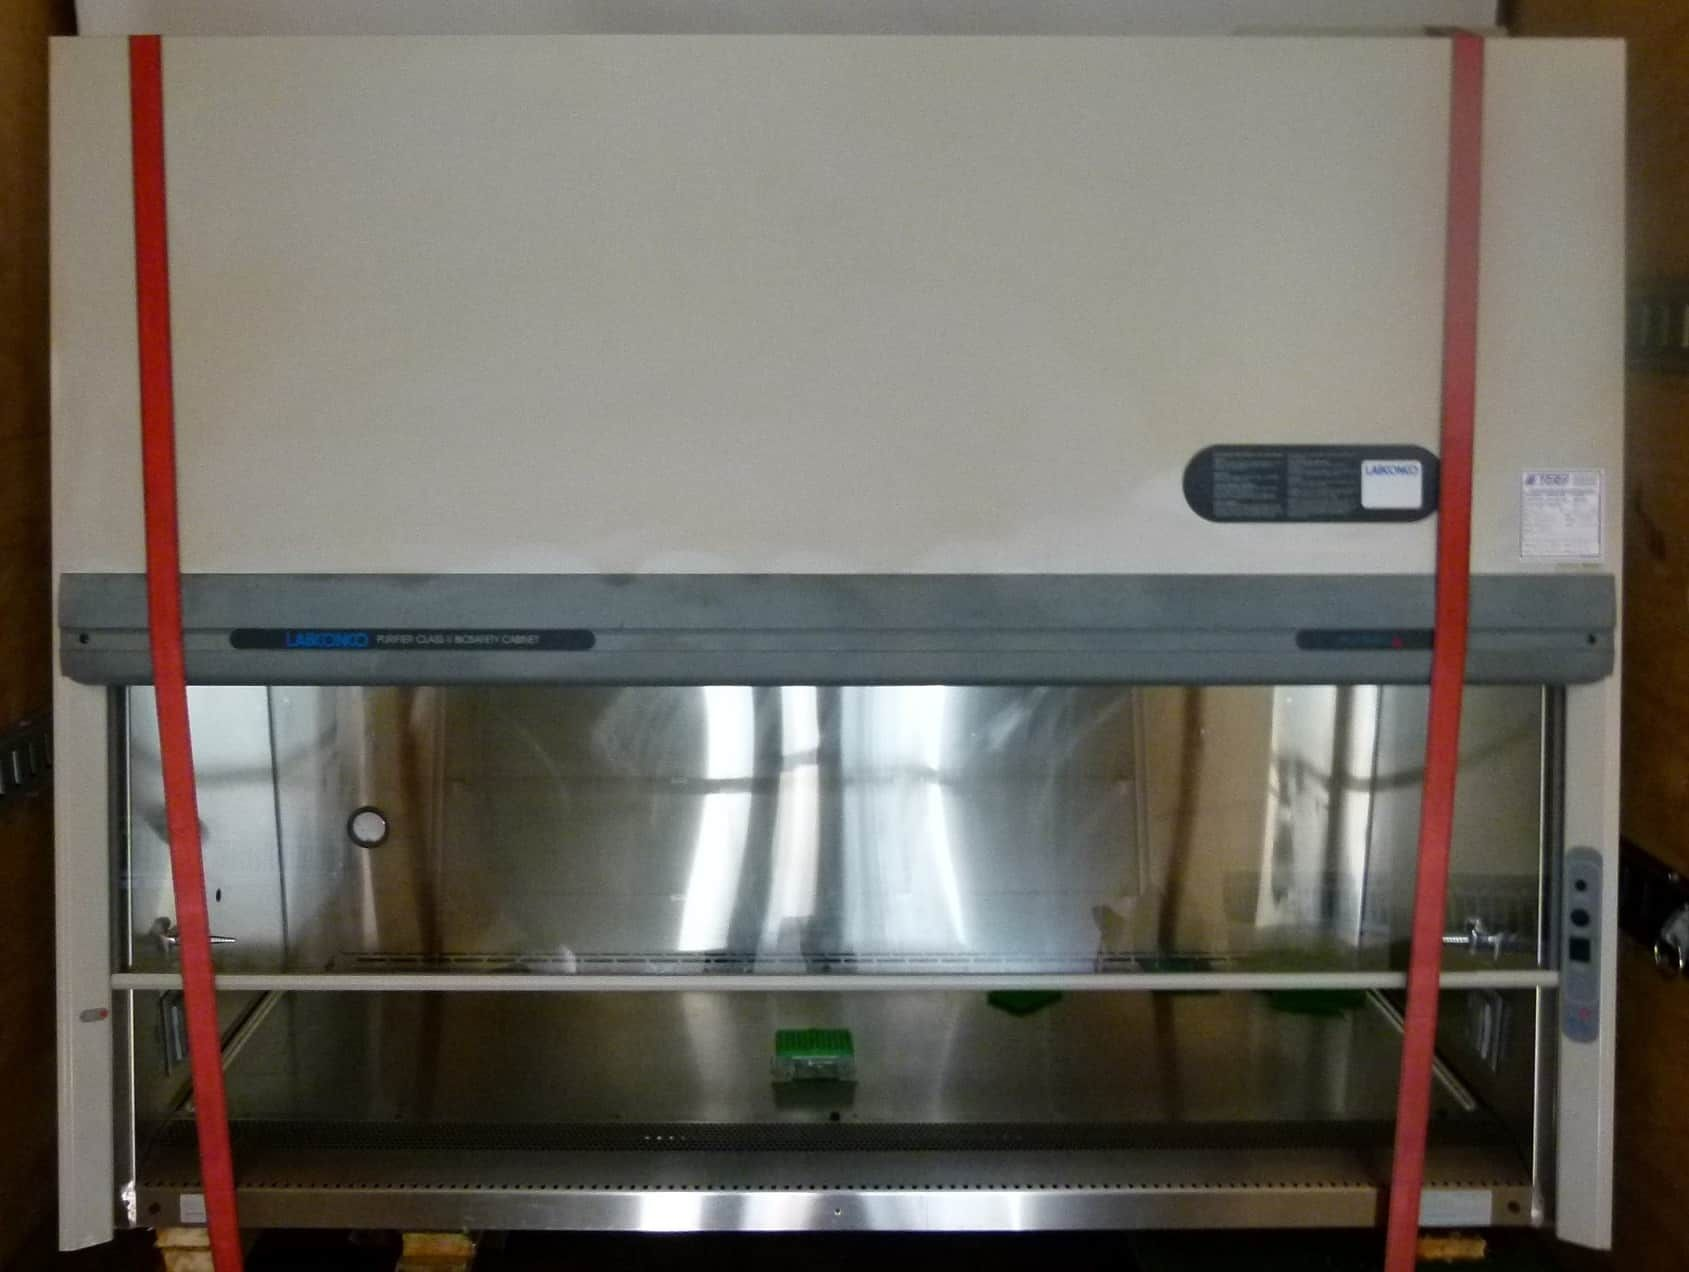 Labconco Purifier Class II 6 Ft Biological Safety Cabinet - Delta Series